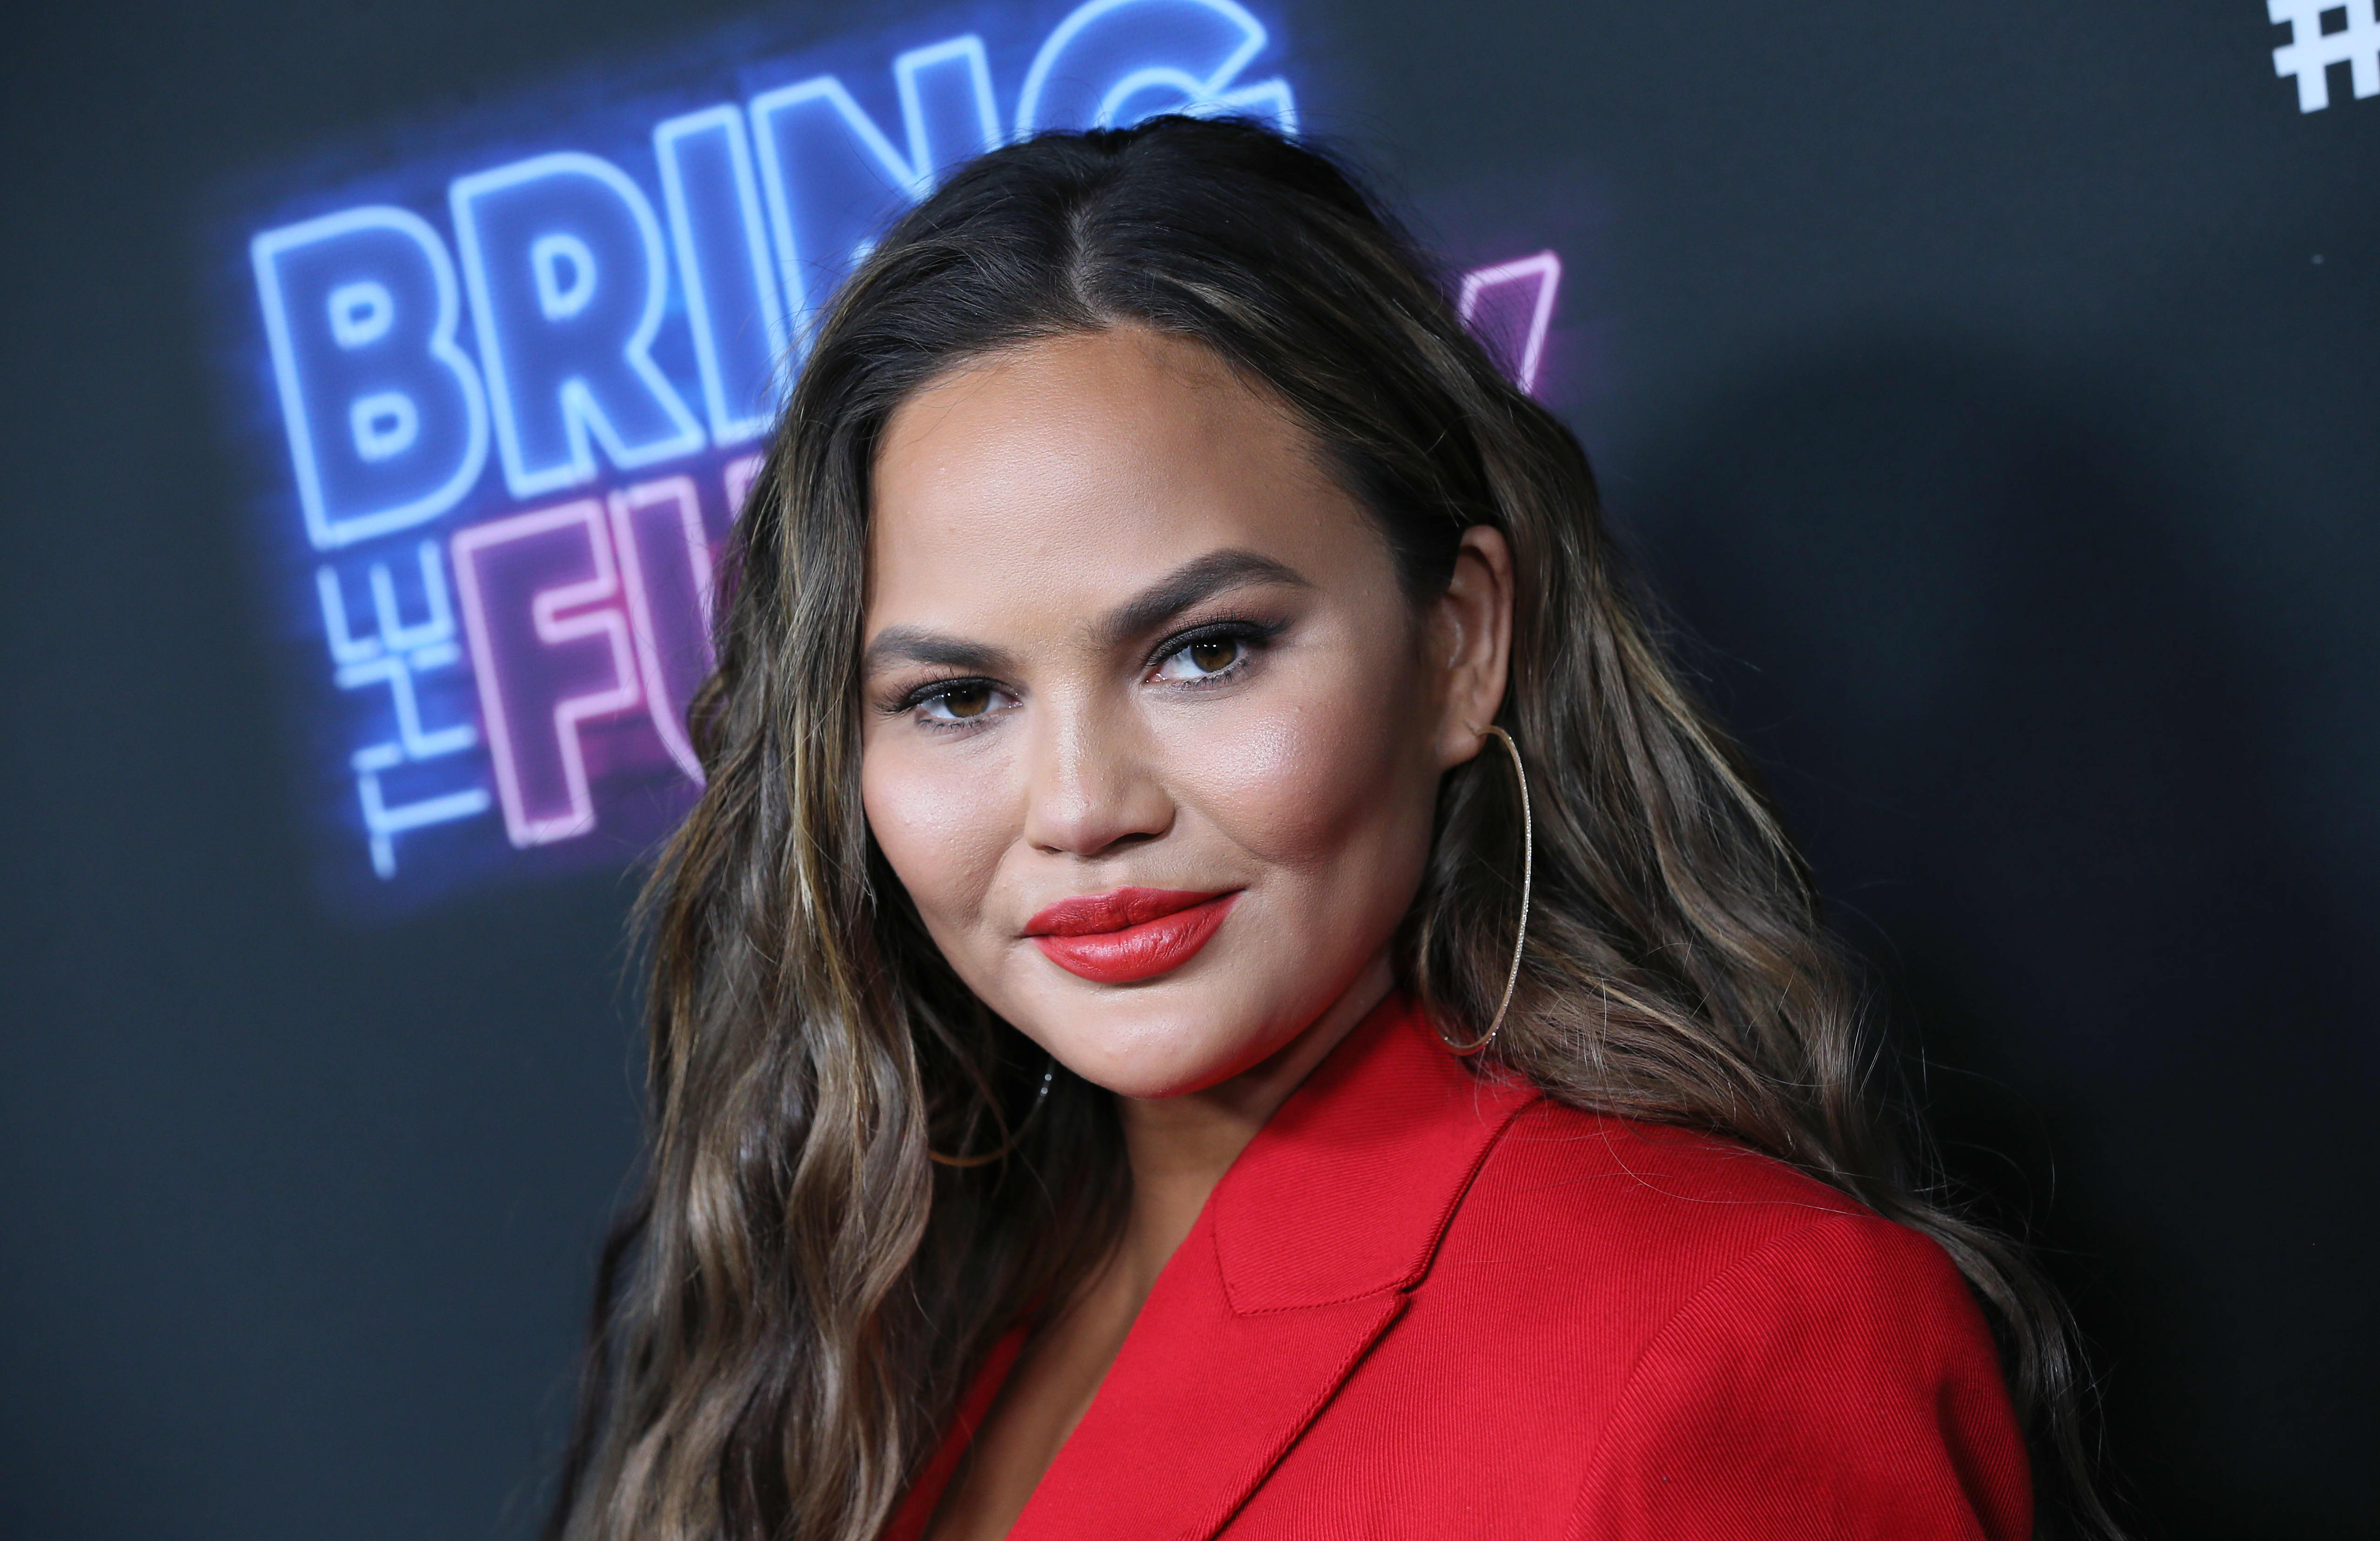 Chrissy Teigen didn't have a bank account and ate McDonald's to save money at the start of her career